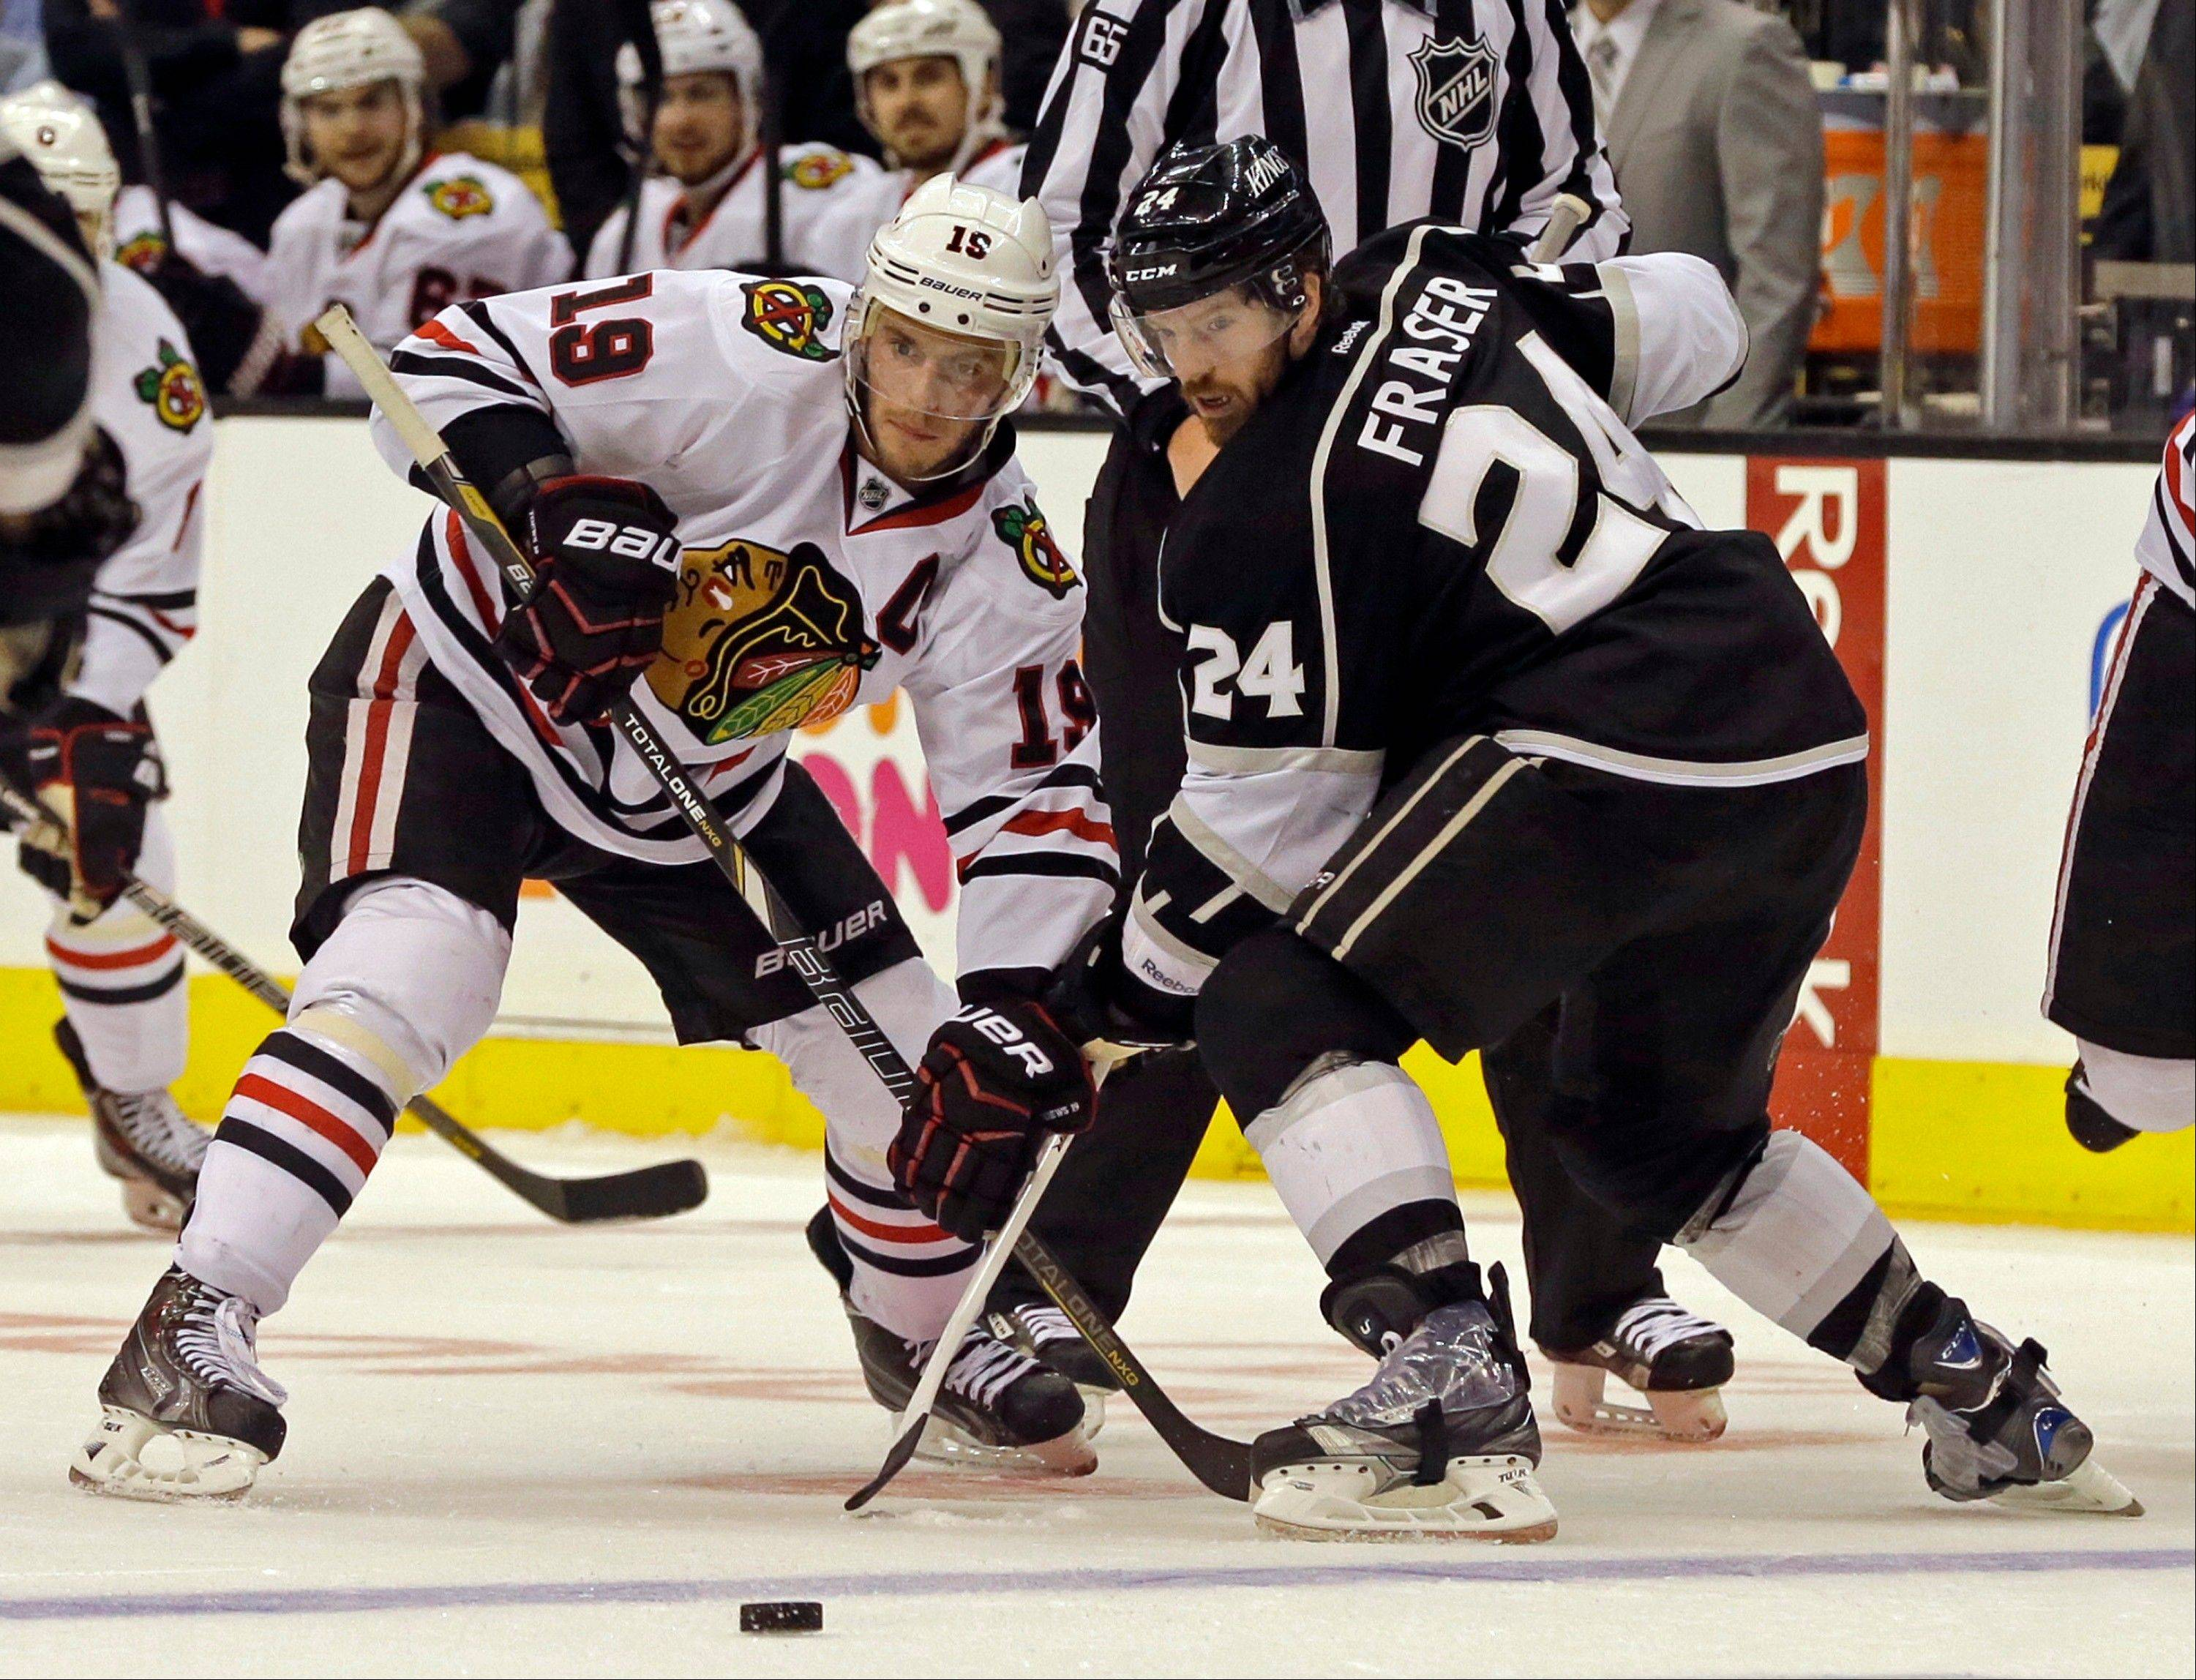 Los Angeles Kings center Colin Fraser (24) and Chicago Blackhawks center Jonathan Toews (19) maneuver in the third period of Game 4 of the NHL hockey Stanley Cup Western Conference finals in Los Angeles Thursday, June 6, 2013. The Blackhawks won, 3-2.